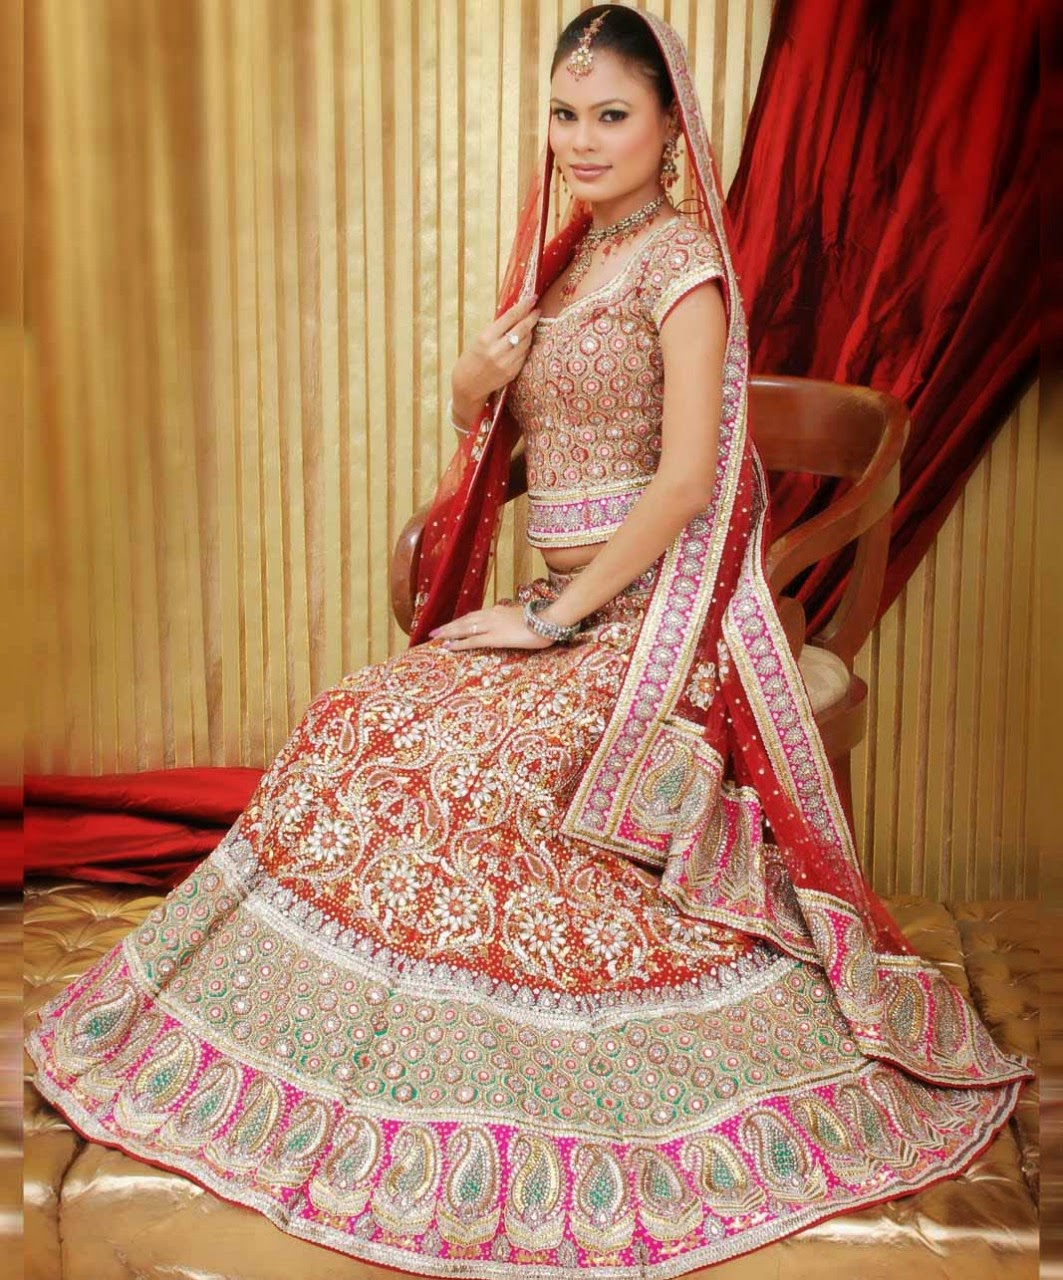 FURQAN LATEST DRESSES FOR WEDDING : Traditional Indian Bridal ...